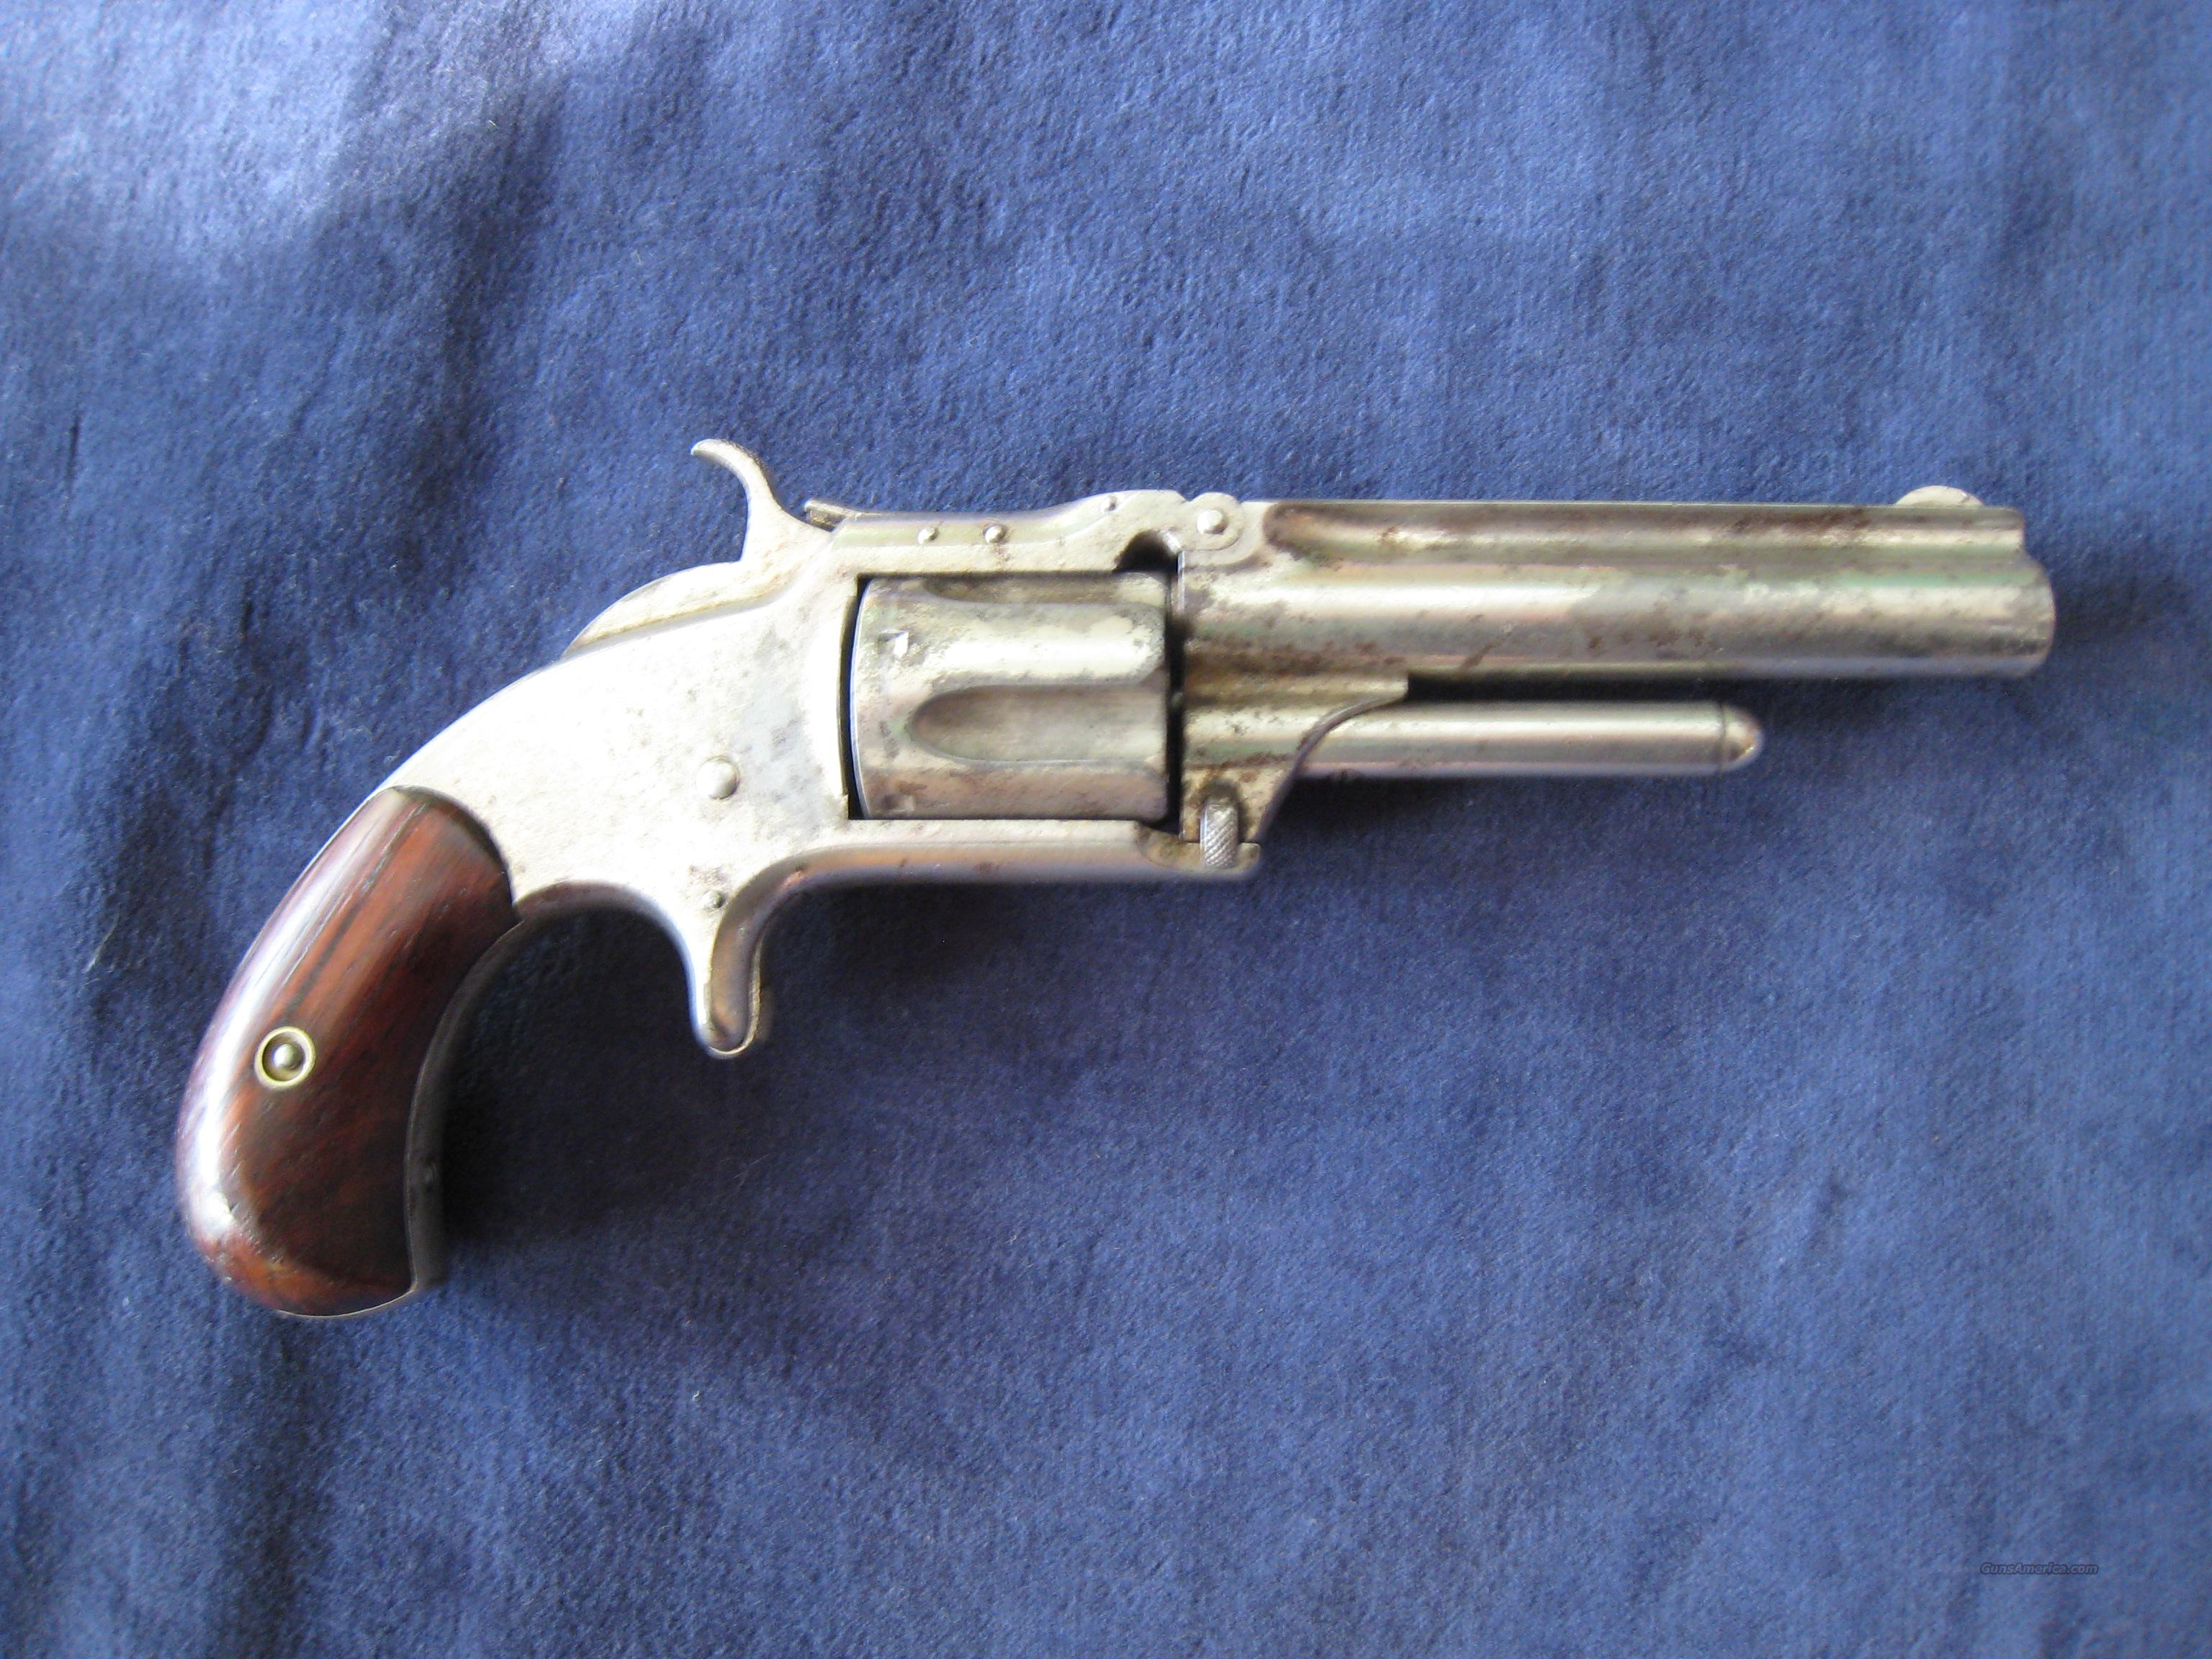 SMITH & WESSON MODEL 1  TIP UP REVOLVER  Guns > Pistols > Smith & Wesson Revolvers > Pre-1899